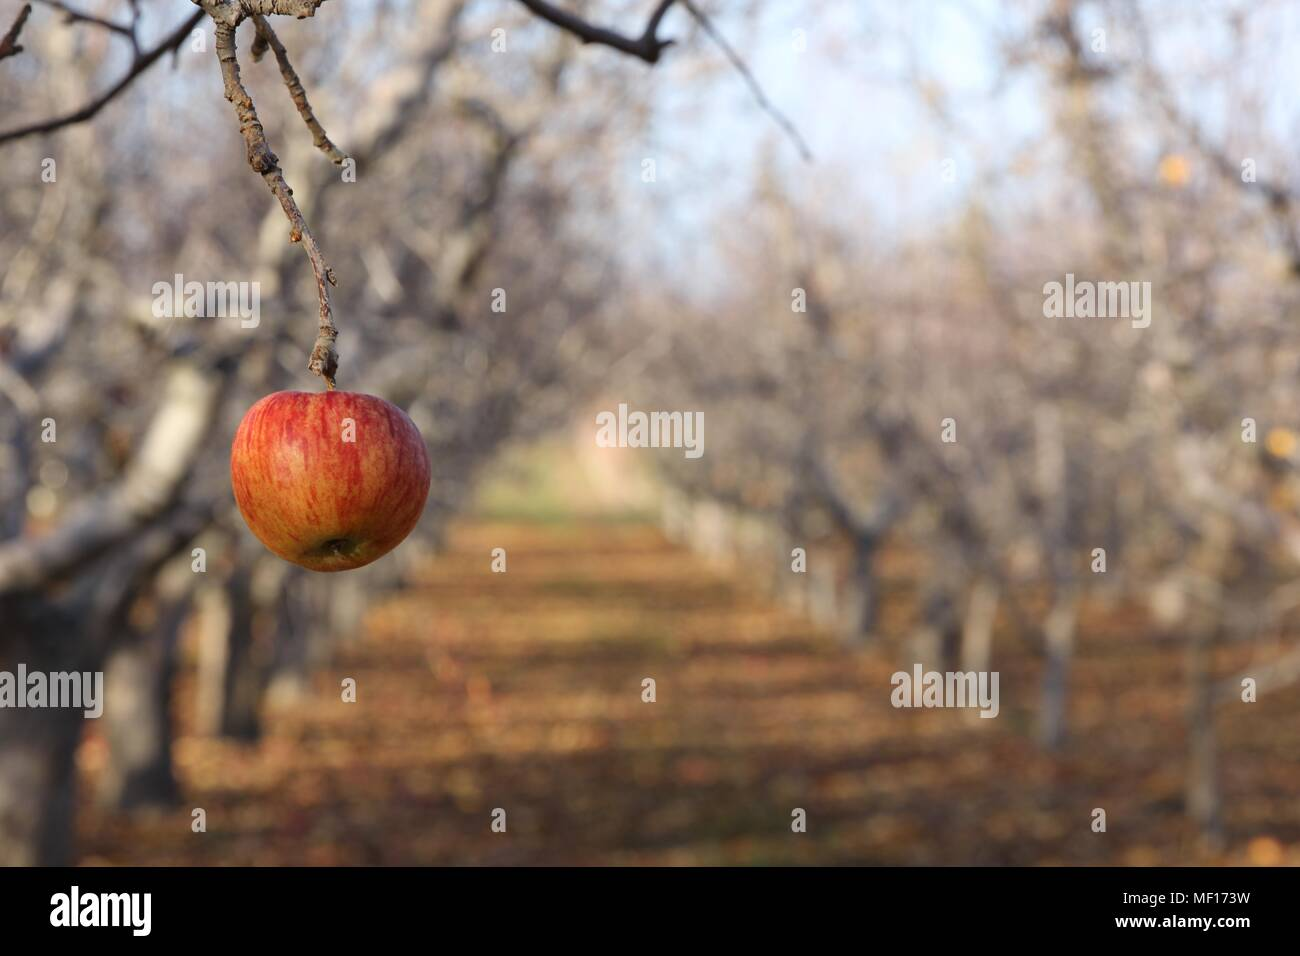 Lonely apple remains hanging in the orchard after all the leaves have fallen from the trees in Yakima, Washington. Stock Photo